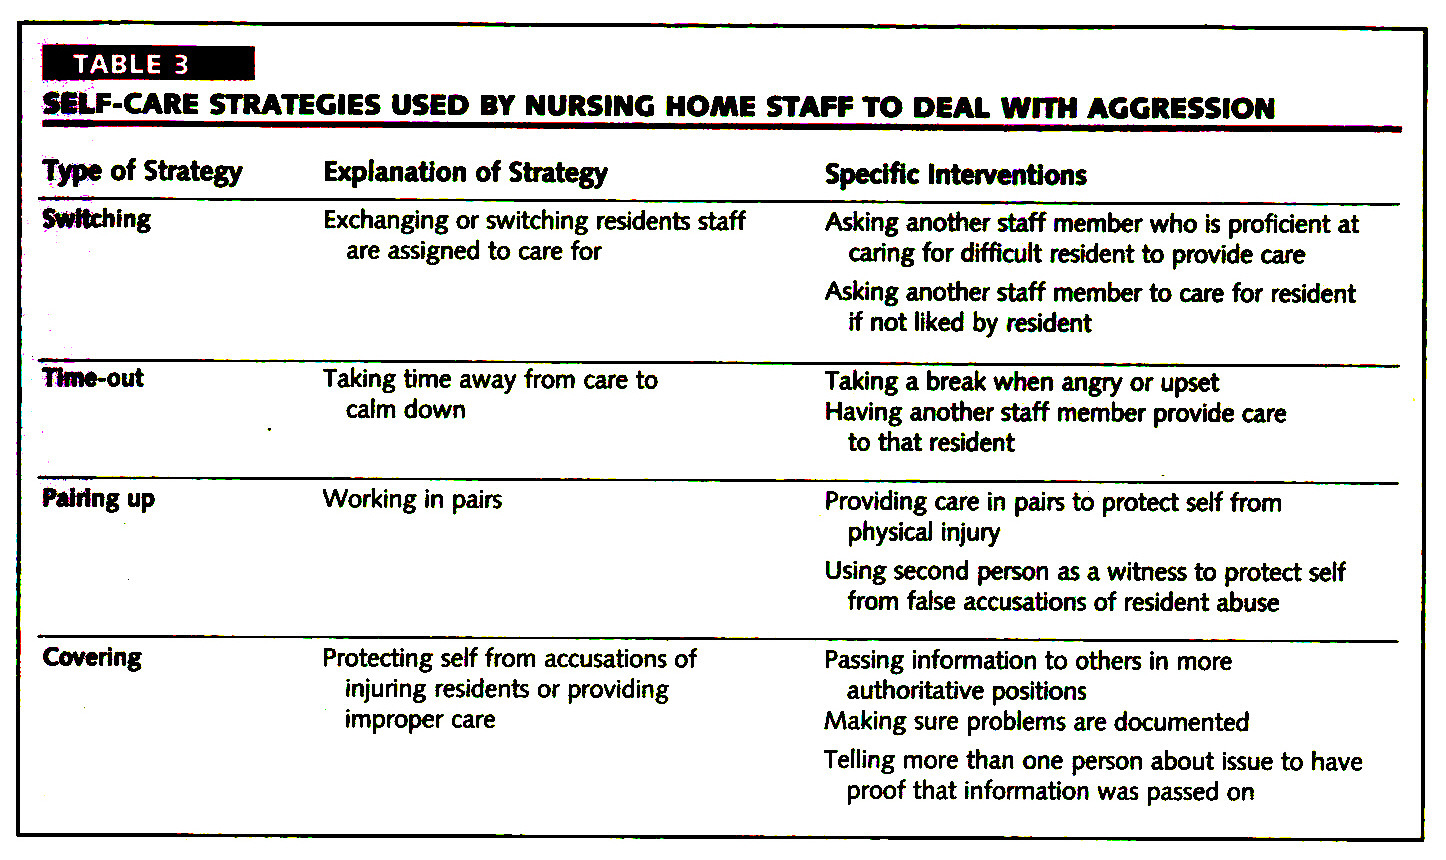 TABLE 3SELF-CARE STRATEGIES USED BY NURSING HOME STAFF TO DEAL WITH AGGRESSION